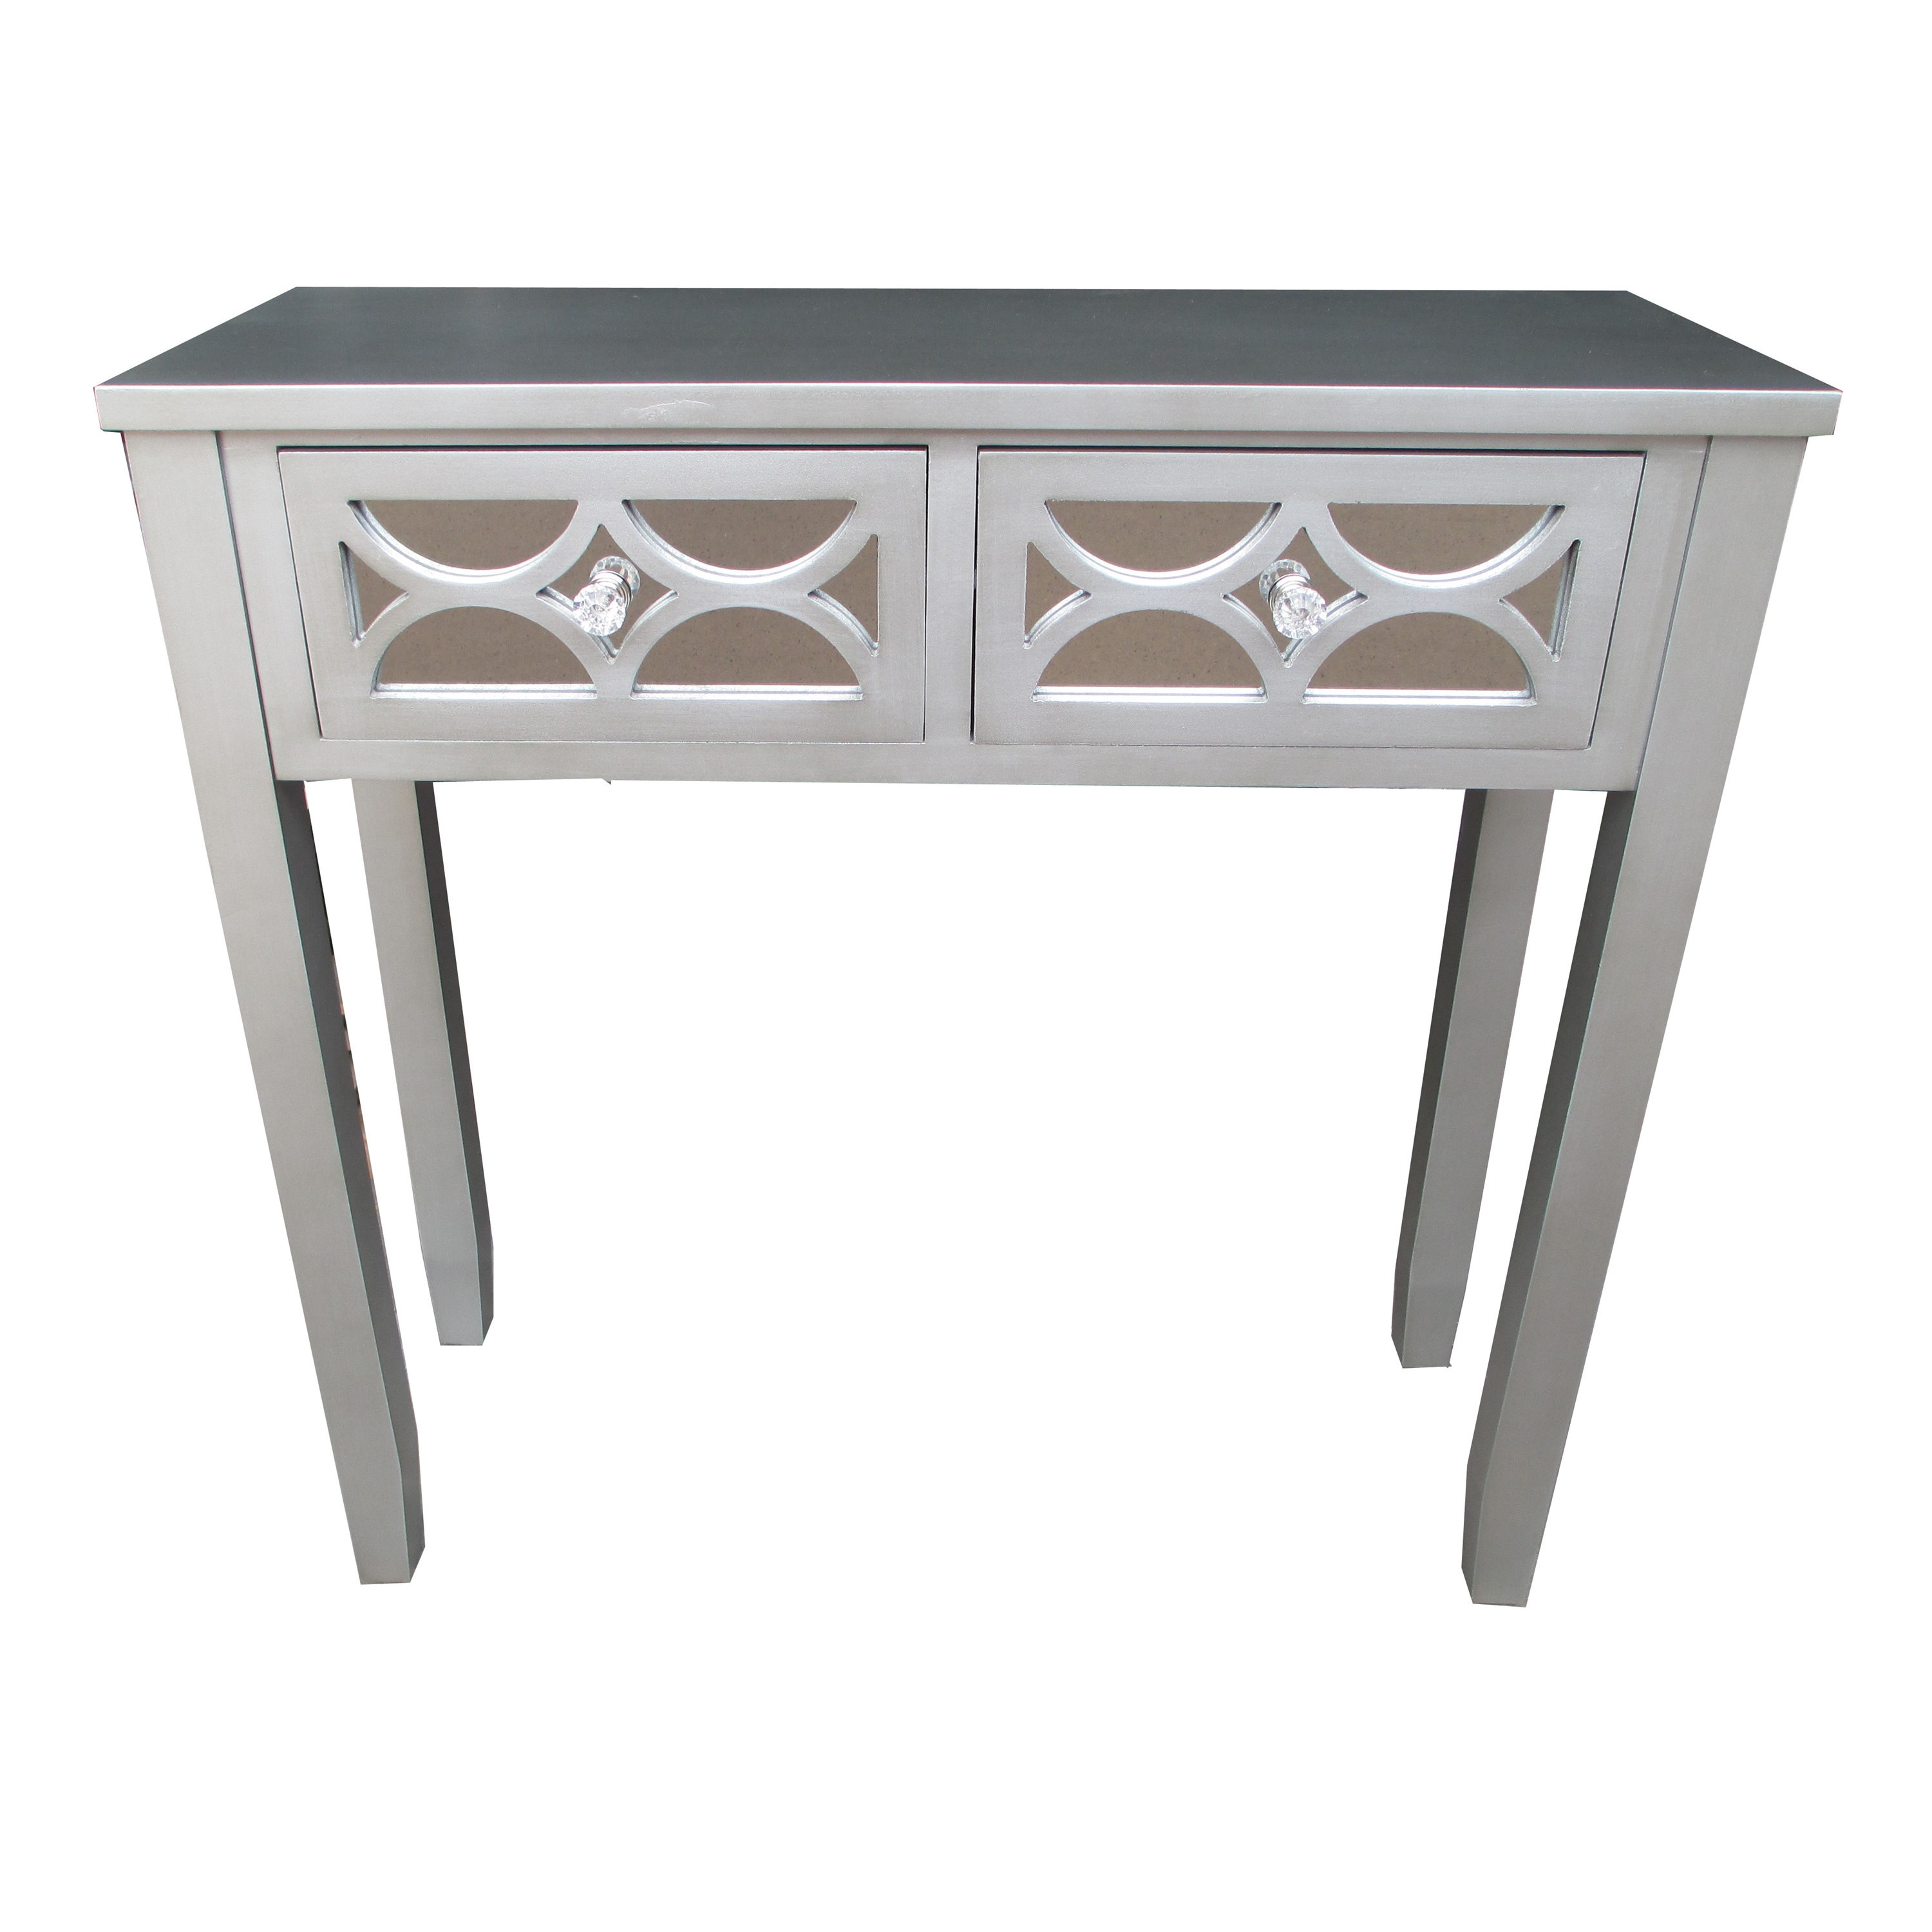 Outstanding Jeco Grey Wood 32 Inch 2 Drawer Console Table Machost Co Dining Chair Design Ideas Machostcouk